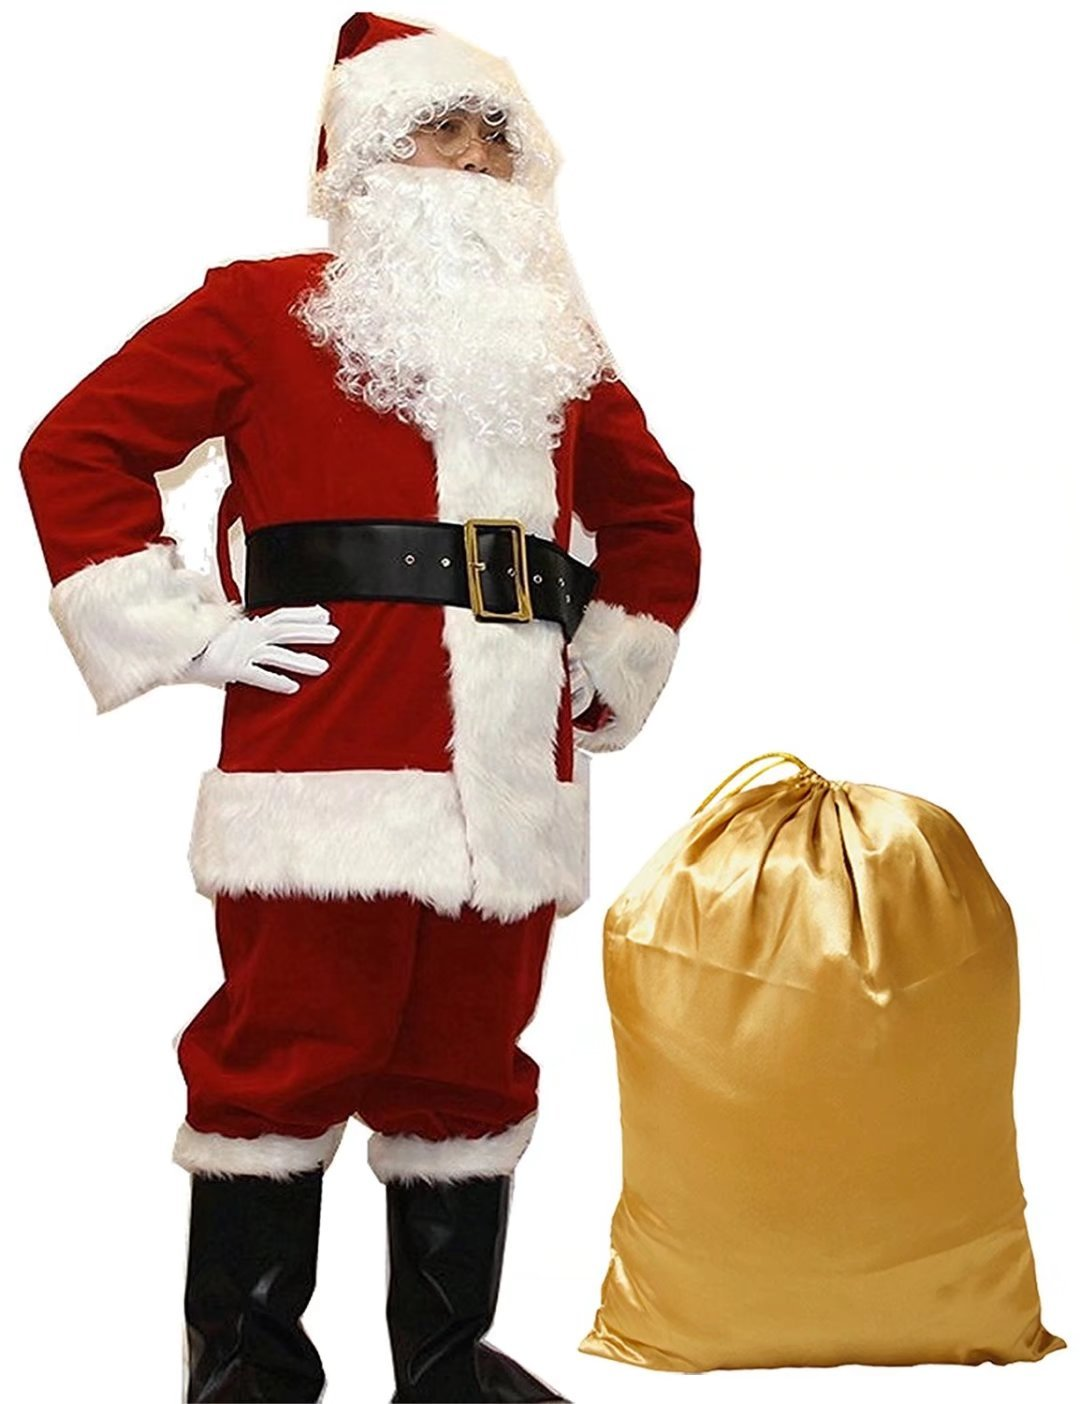 10 Pcs Complete Deluxe Velvet Christmas Santa Claus Costume Suit Adult (XL, Red) by Zollzirr